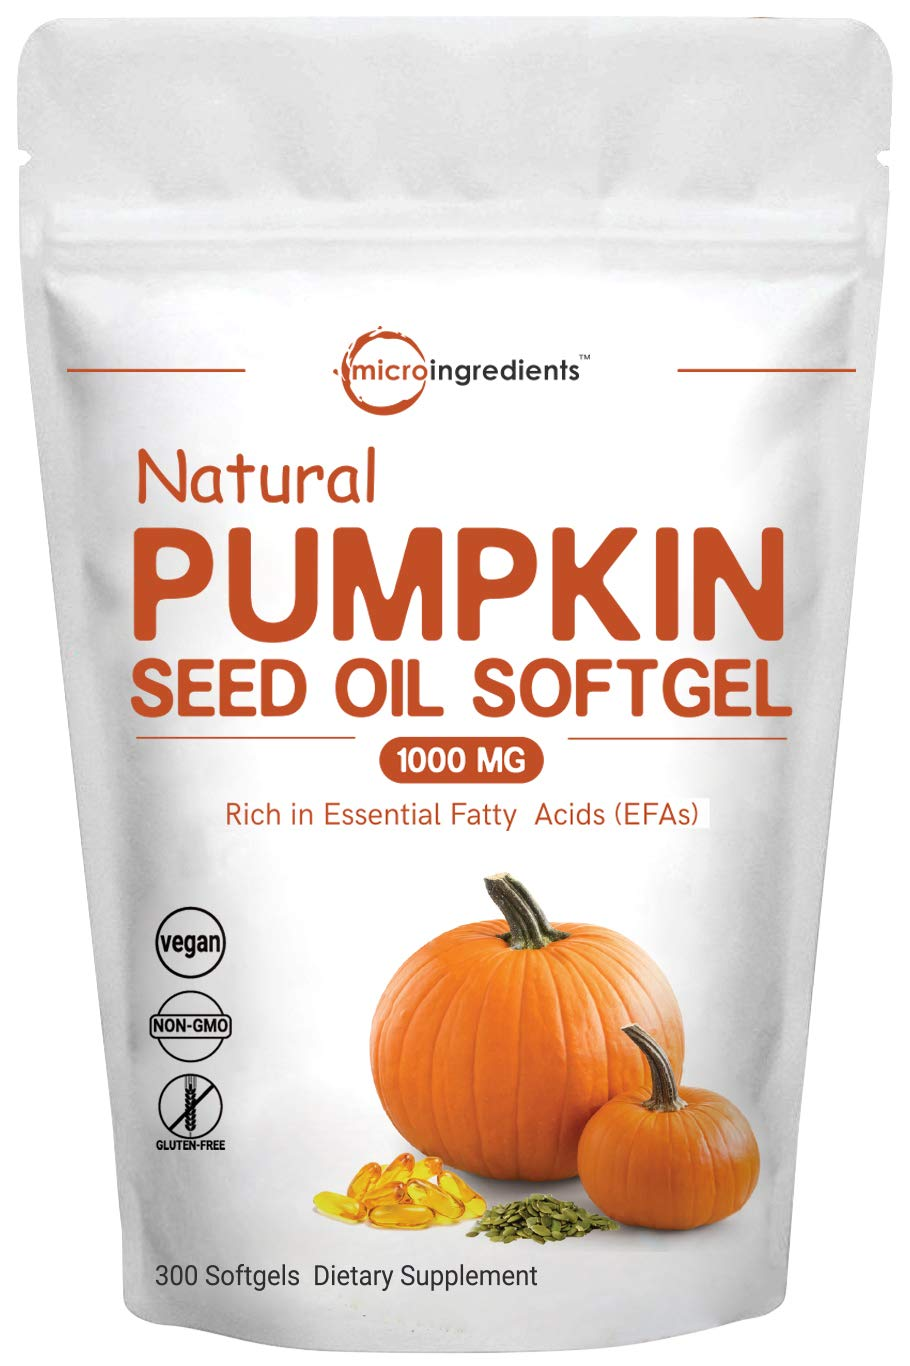 Maximum Strength Pumpkin Seed Oil 1000mg Per Servicing, 300 Liquid Softgels, Supports Urinary, Bladder and Prostate Health, No GMOs and Vegan Friendly by Micro Ingredients